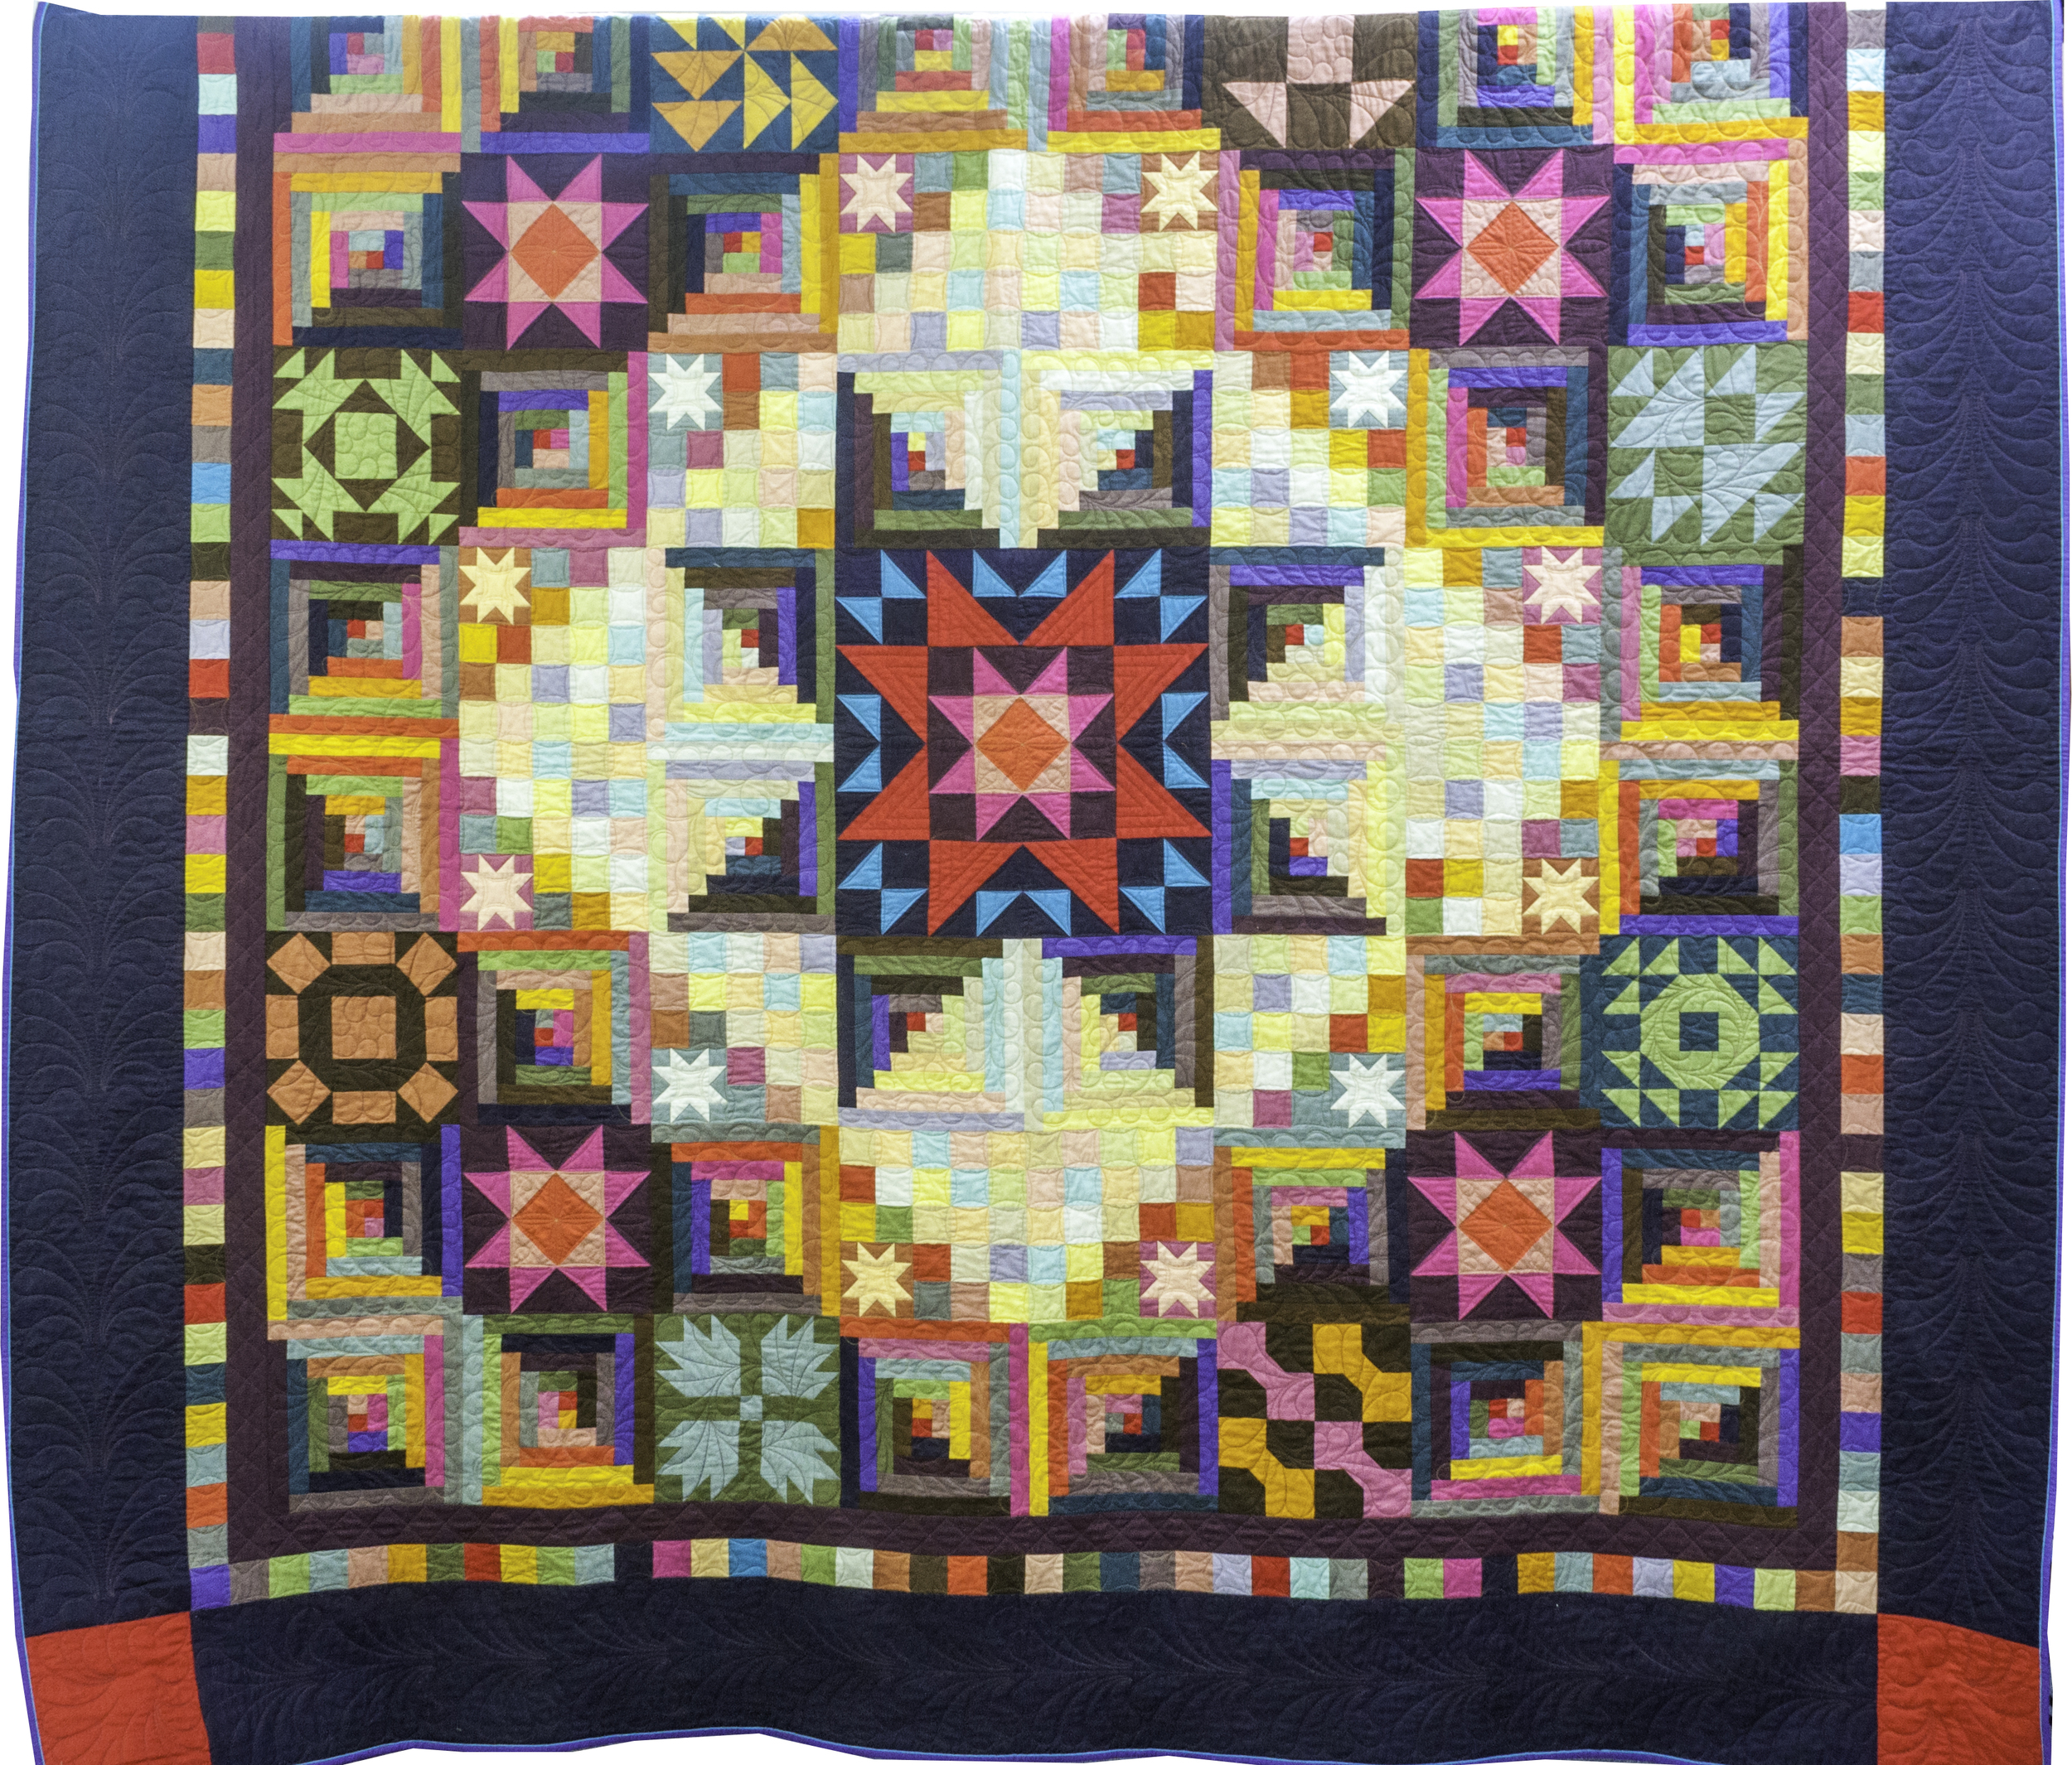 2015 Best of Show by Sarah Michael and quilted by Helia Ricci